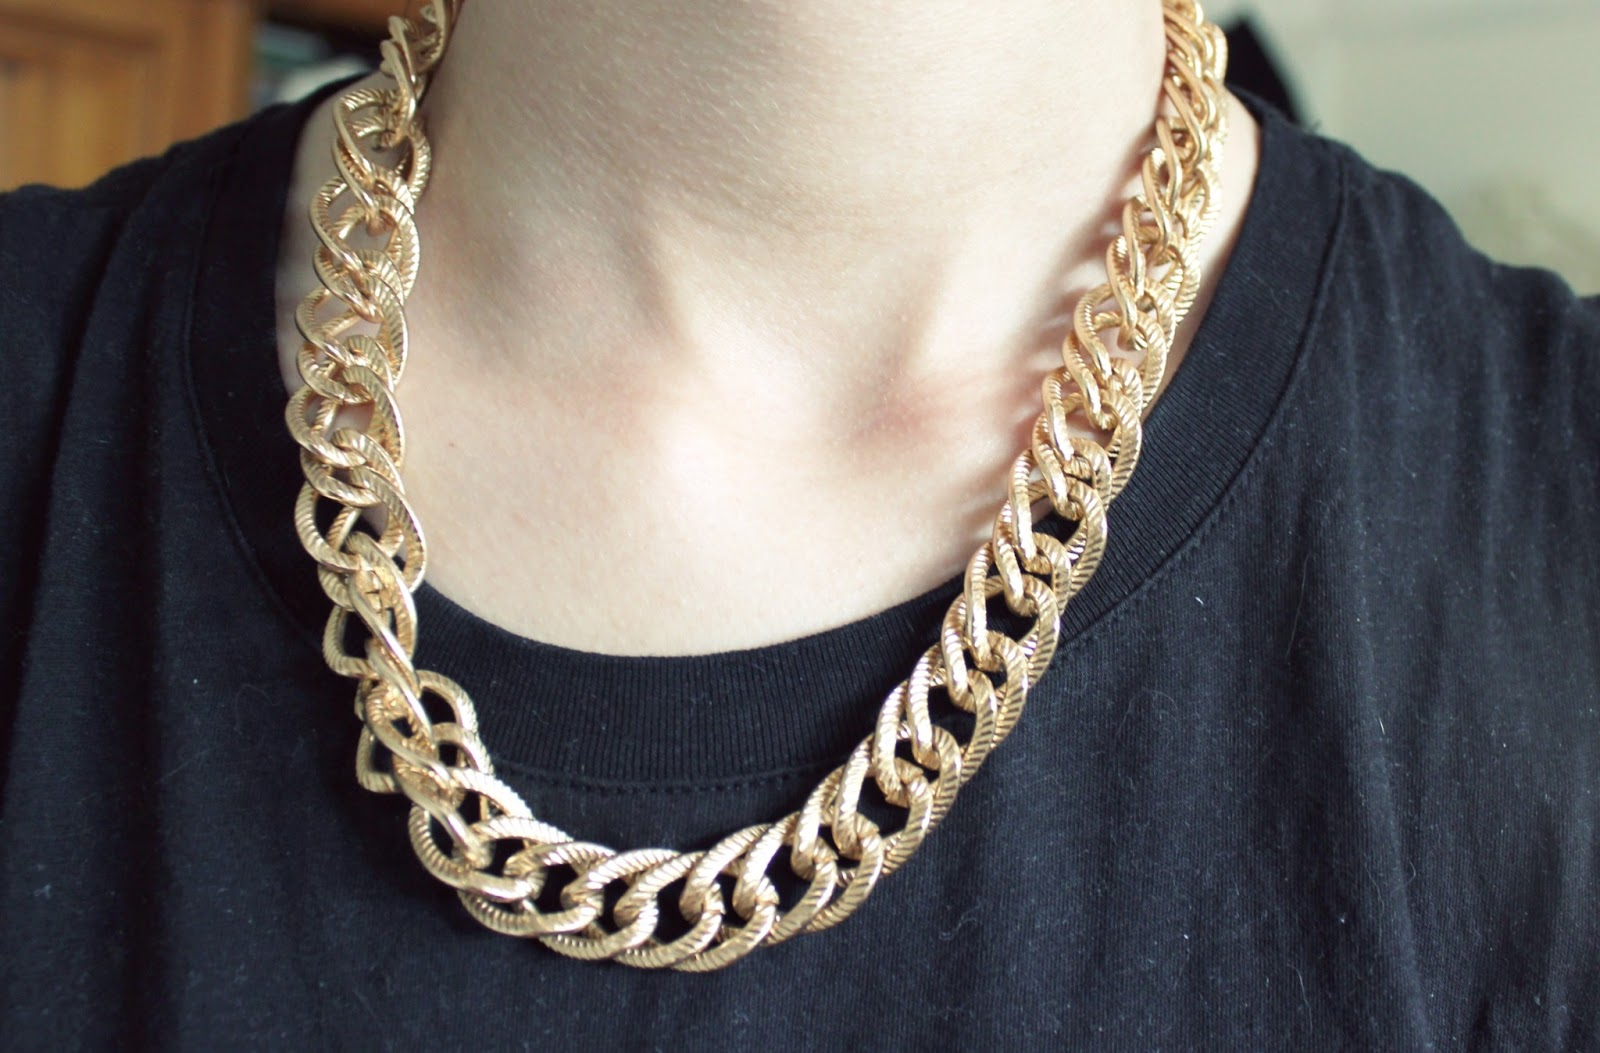 Gold Chain Tumblr Outfits | www.imgkid.com - The Image Kid ...